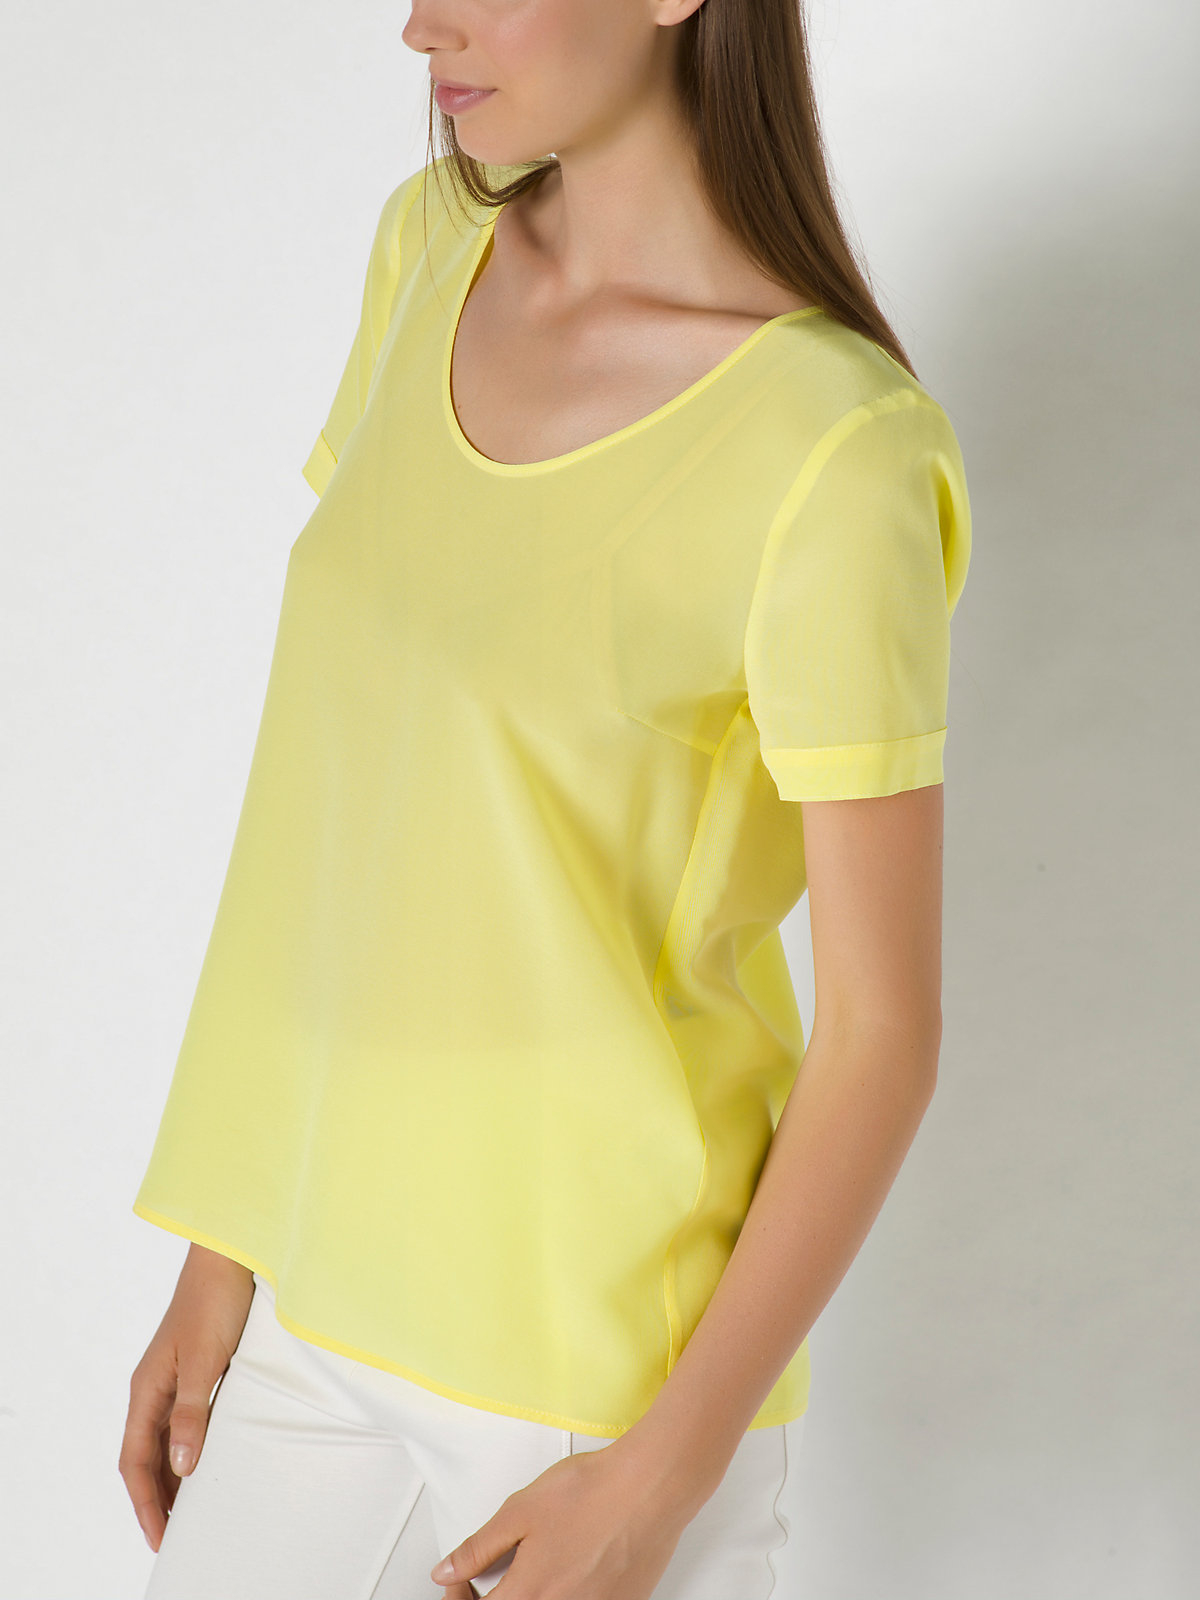 Yellow New York & Company Short sleeve blouses, New York & Company, Short sleeve blouses, New York & Company Short sleeve blouses, Yellow Short sleeve blouses. xvibrantzombiex. Aspen Hill, MD Response time: about 2 weeks. Last seen: Advertisement. Just snap, upload and sell - for free. Sell now. Advertisement.